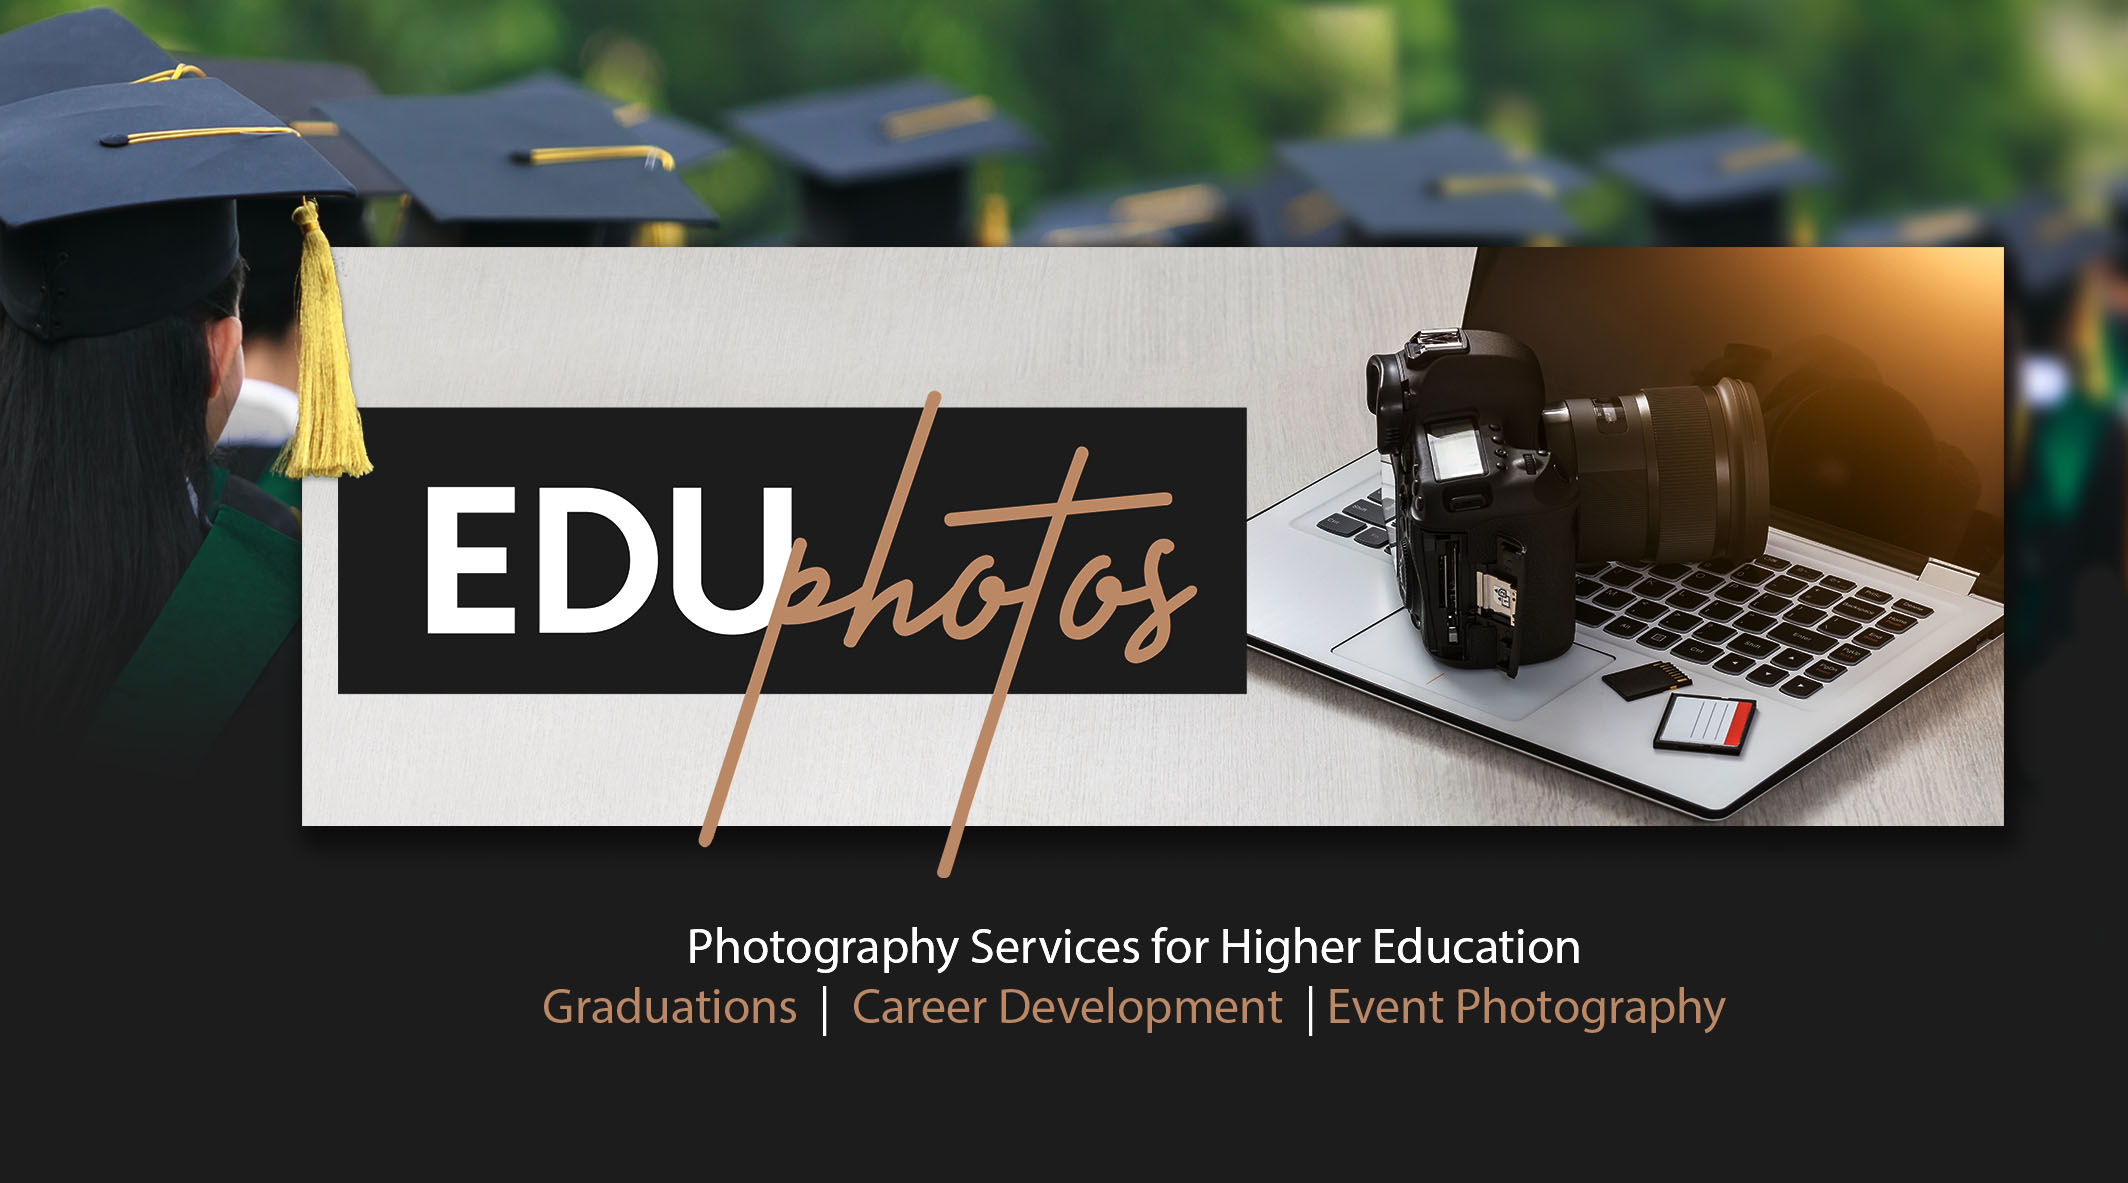 EDUphotos for administrators and students